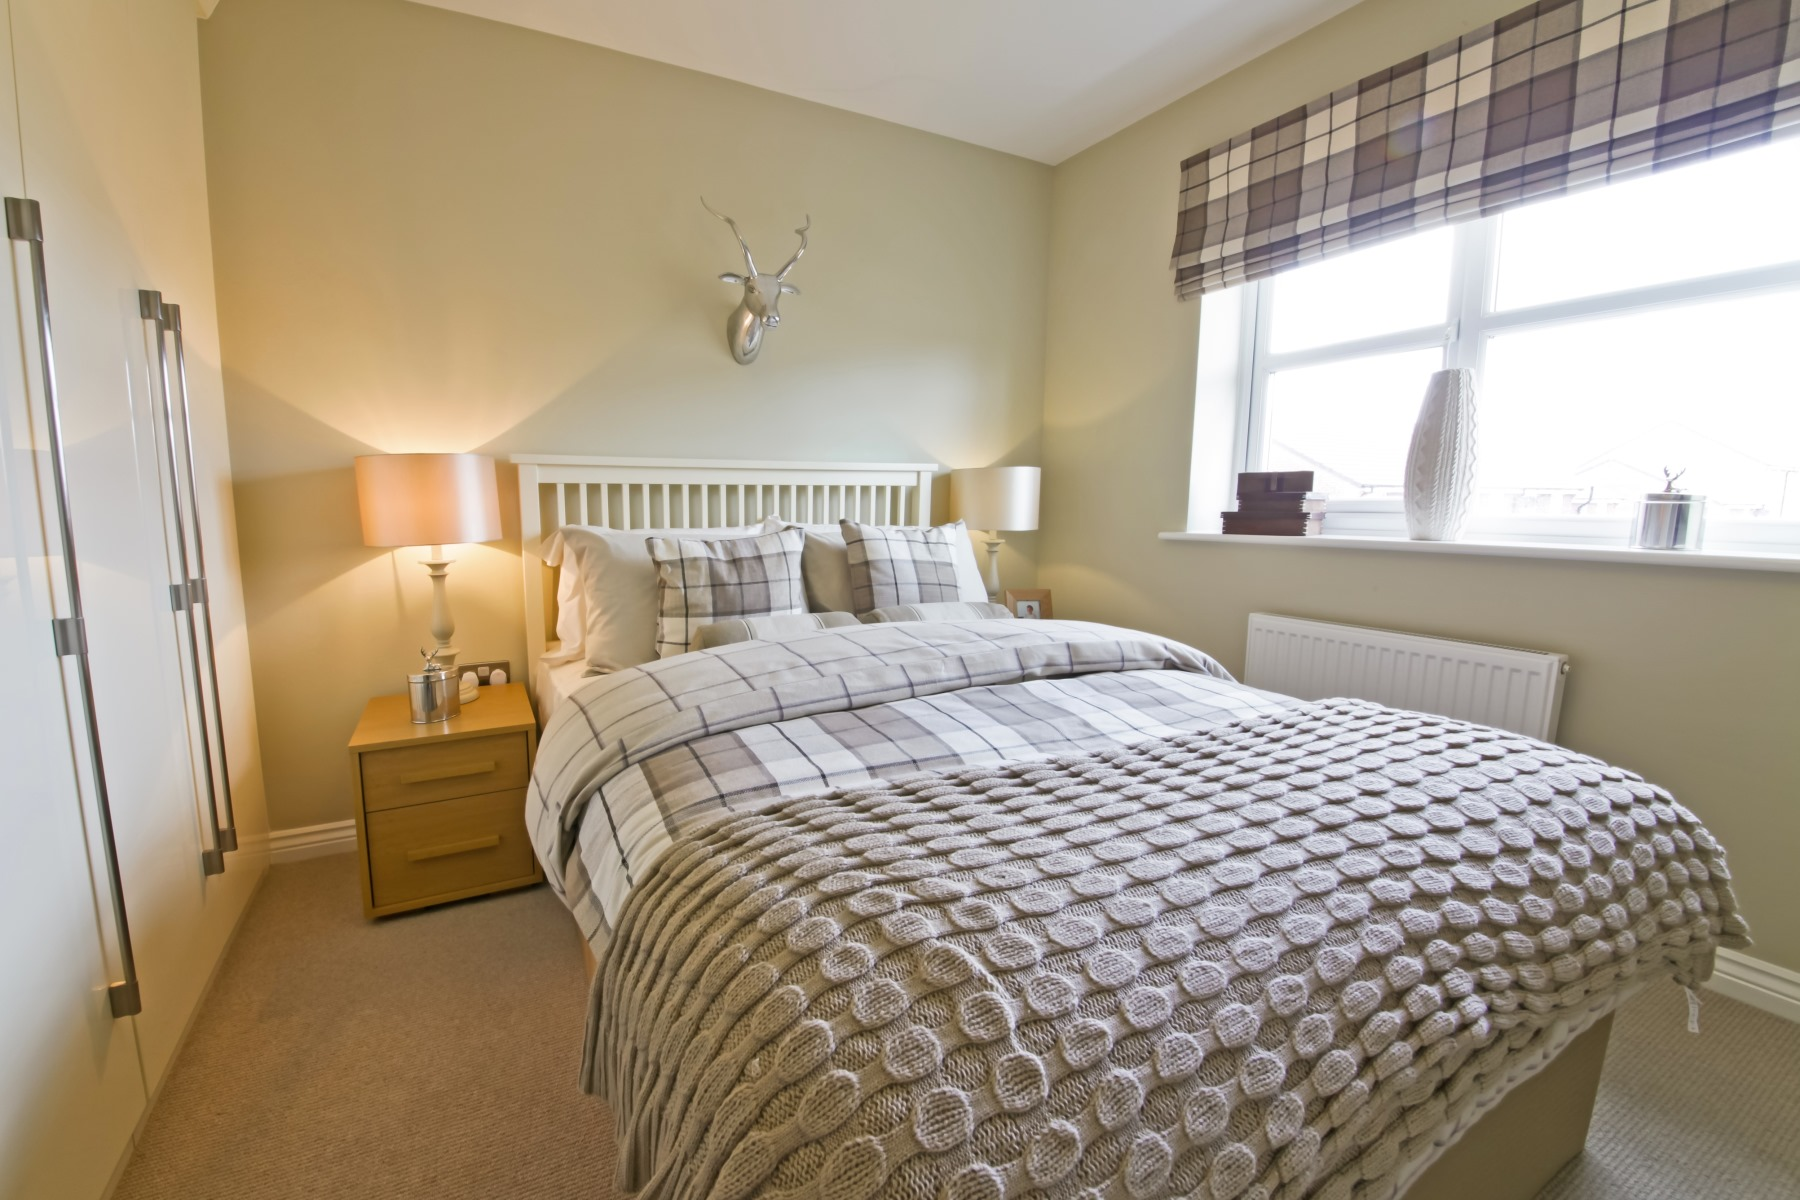 Halliford Master Bedroom 2